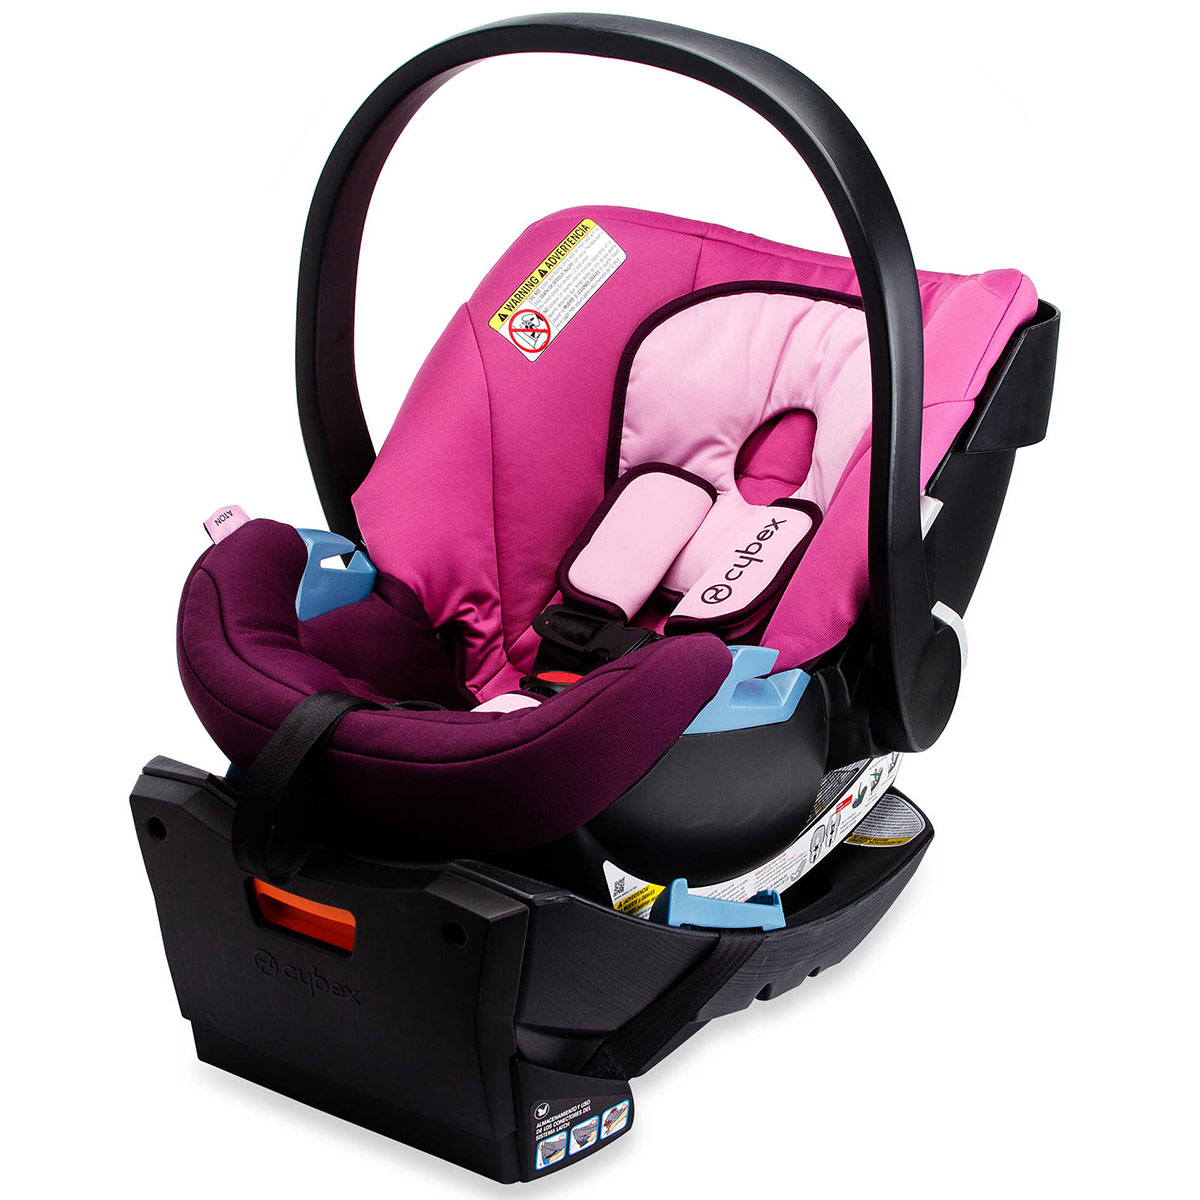 Avocent Aton Infant Car Seat 2016 - Purple Rain